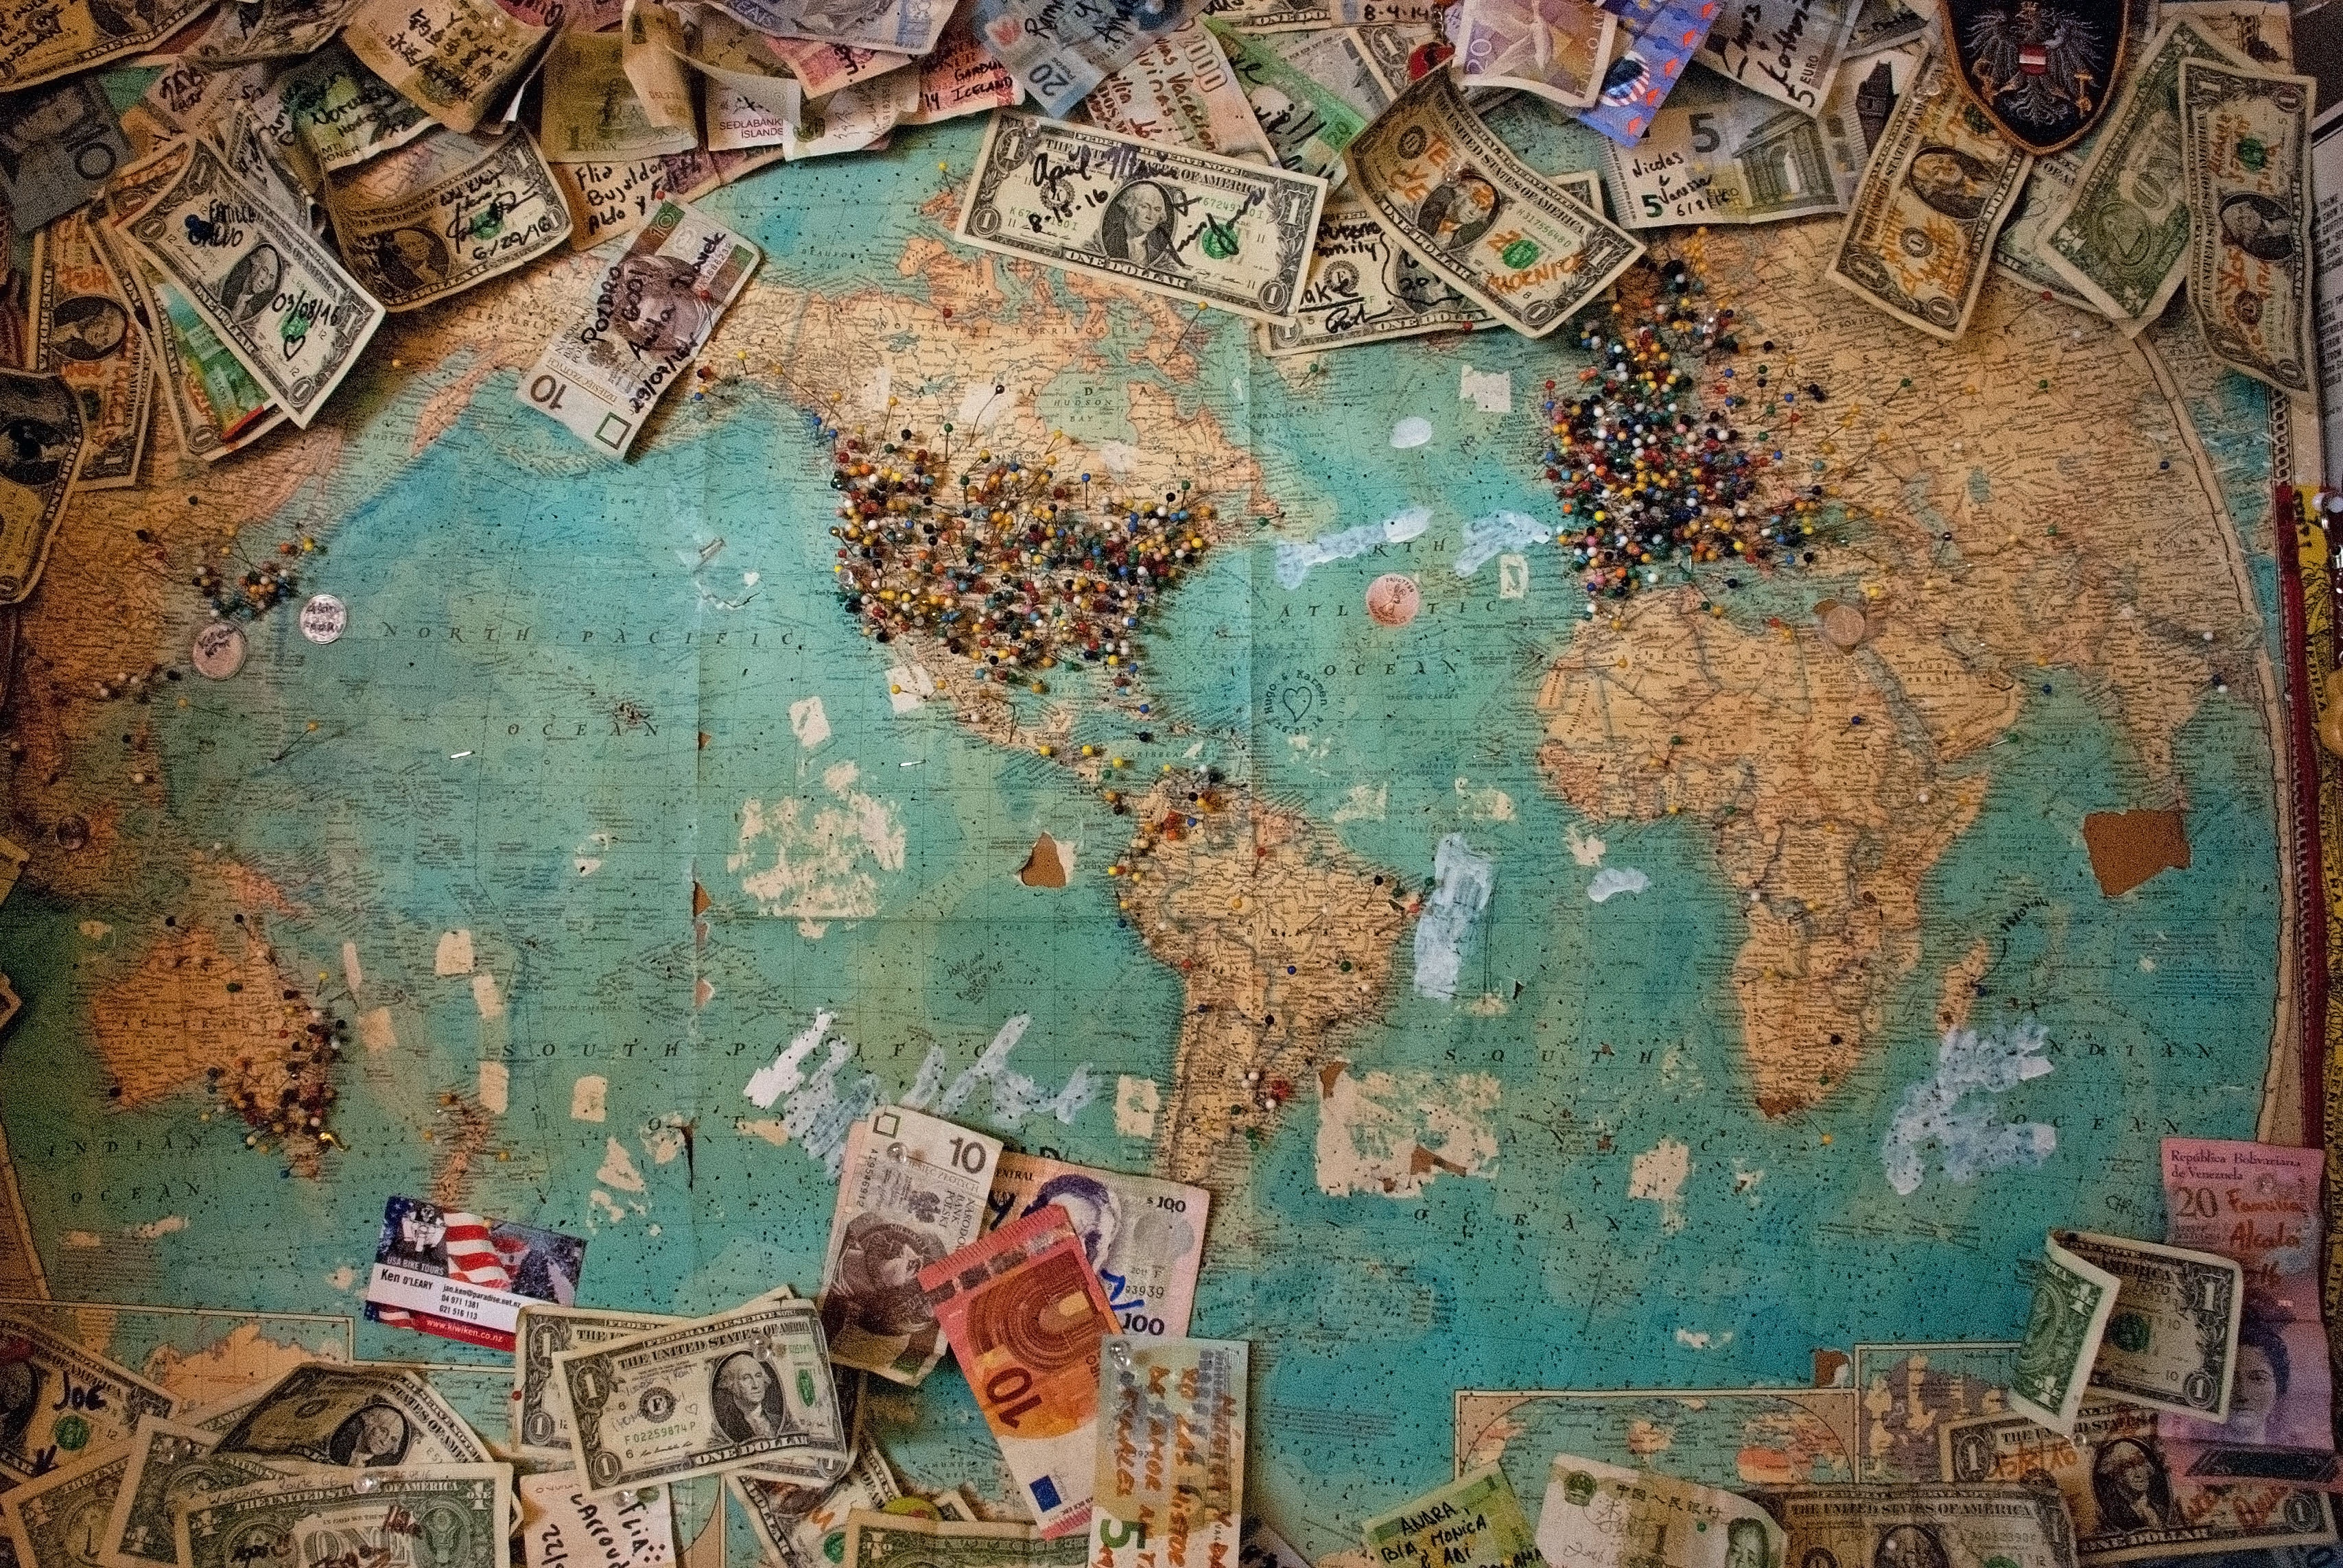 Payoneer Announces Program to Help Businesses Make Cross-Border Payments